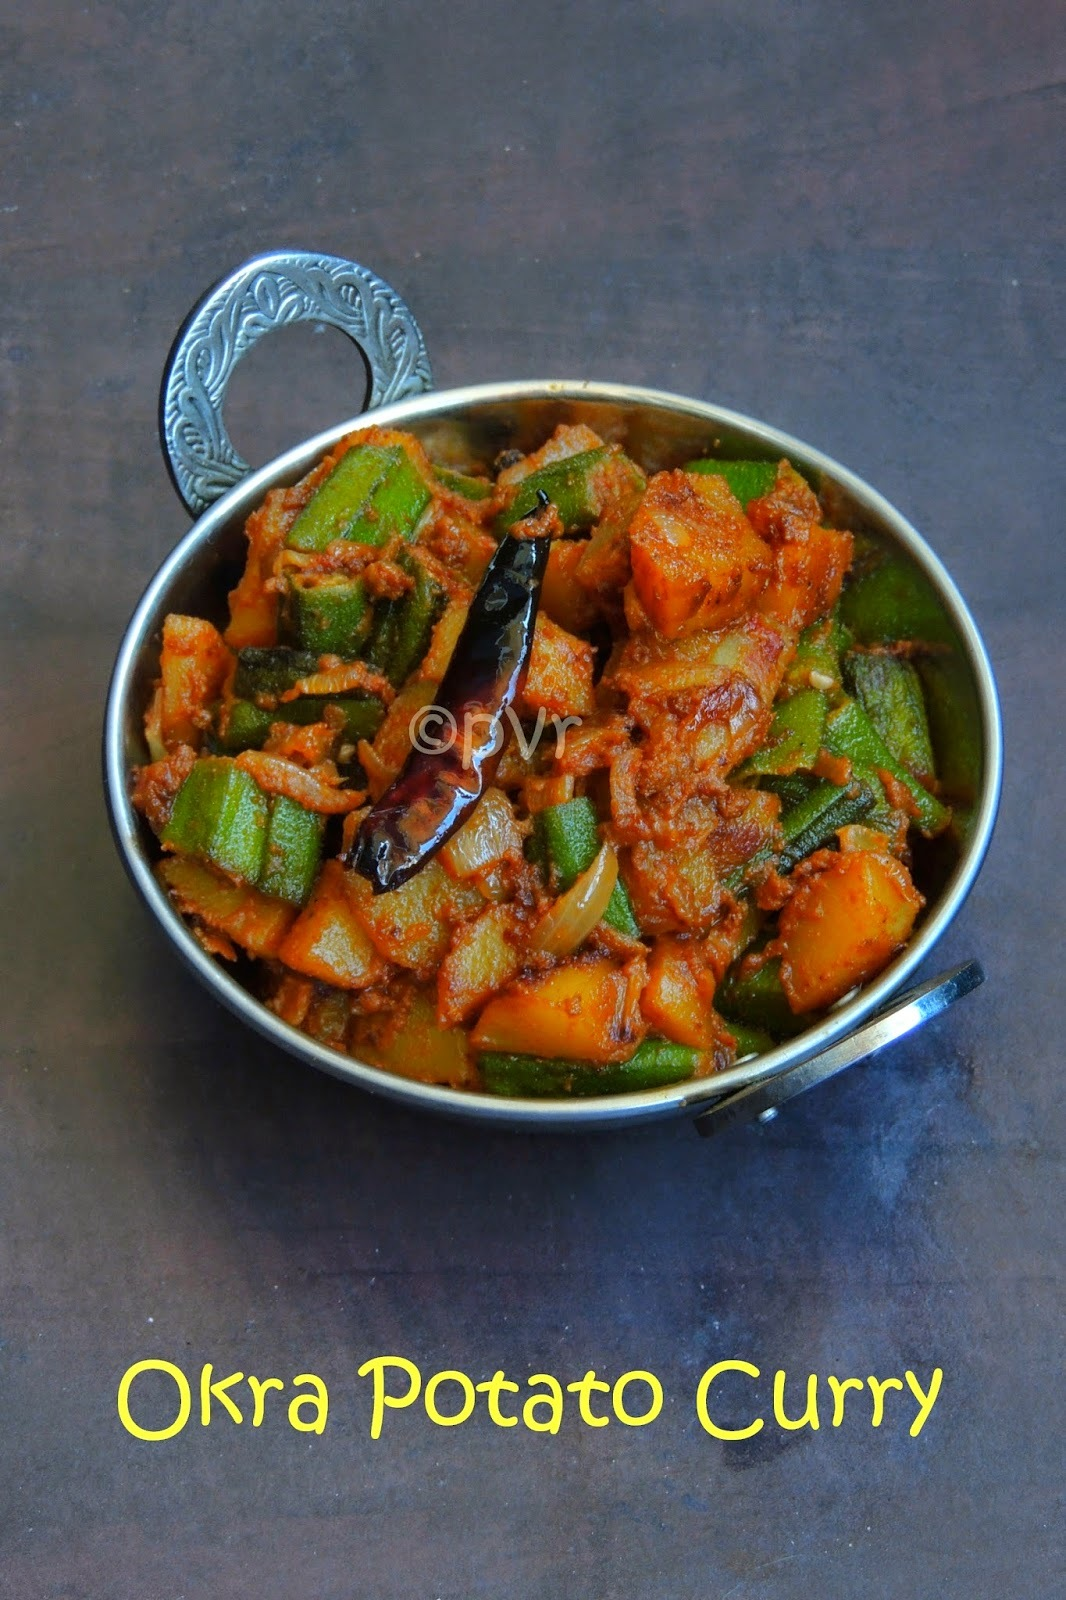 Okra Potato Curry/ Bhindi Aloo Ki Sabzi